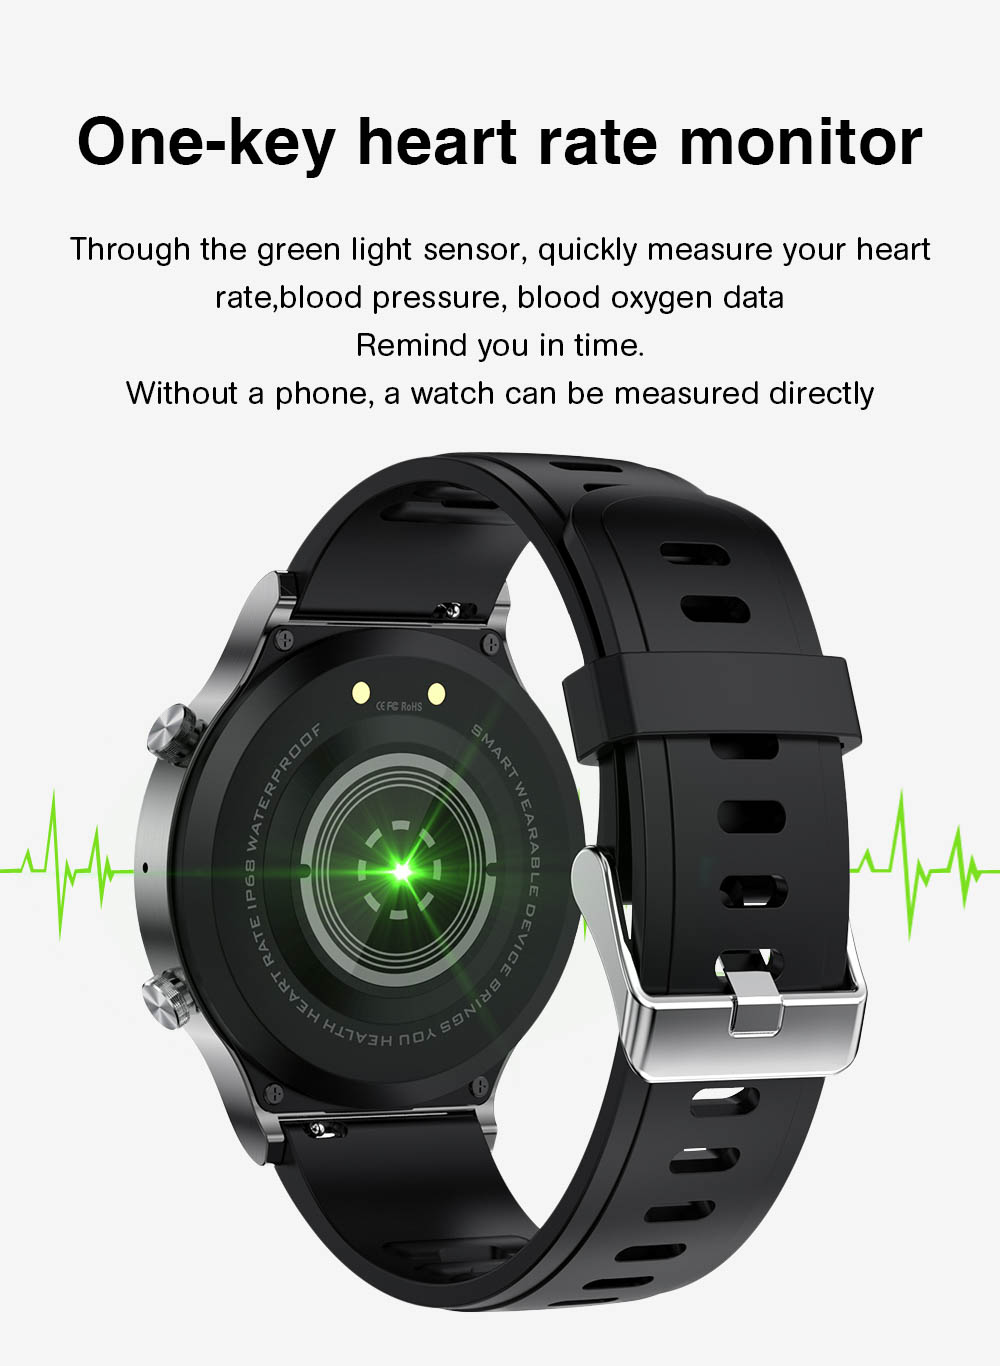 H8039aaf3cd704155870a6c14ed1e509fd NUOBO 2021 New Smart Watch Men Bluetooth Call Heart Rate Blood Pressure Sports IP68 Waterproof Smartwatch for Android IOS Phone